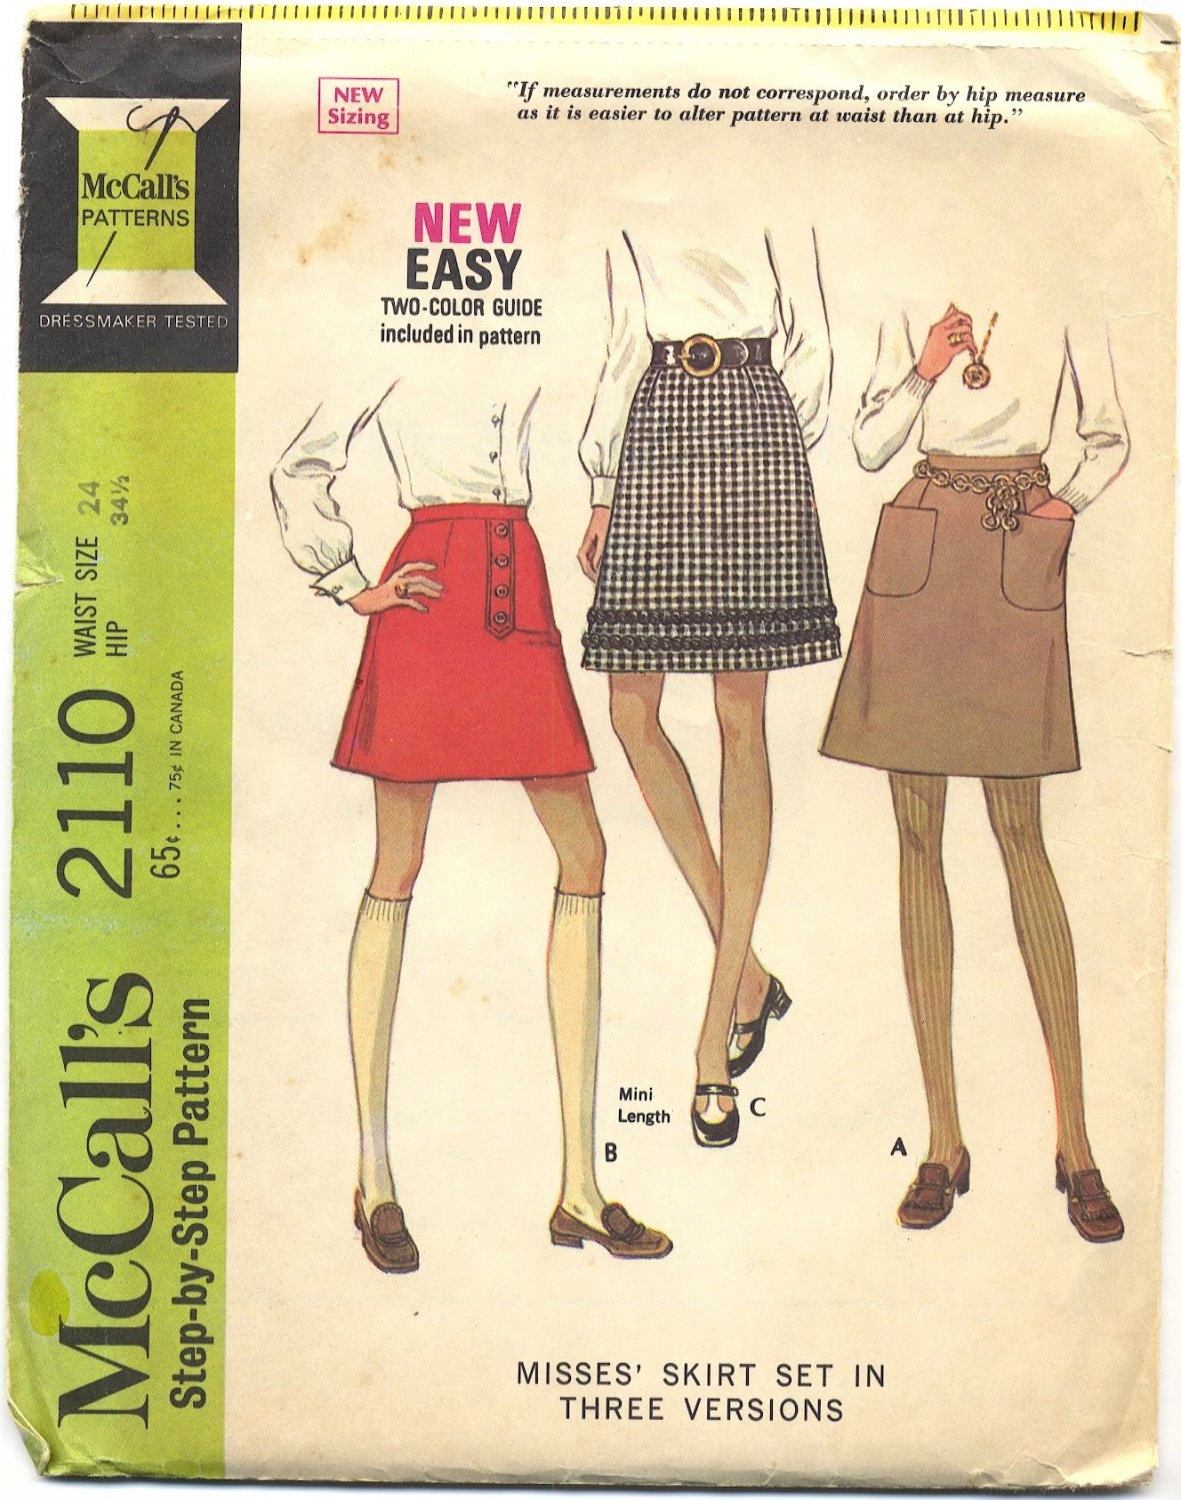 """McCall's 2110 Skirt Set """"New Sizing"""" Sewing Pattern - Waist Size 24"""" Vintage 1969 60s"""